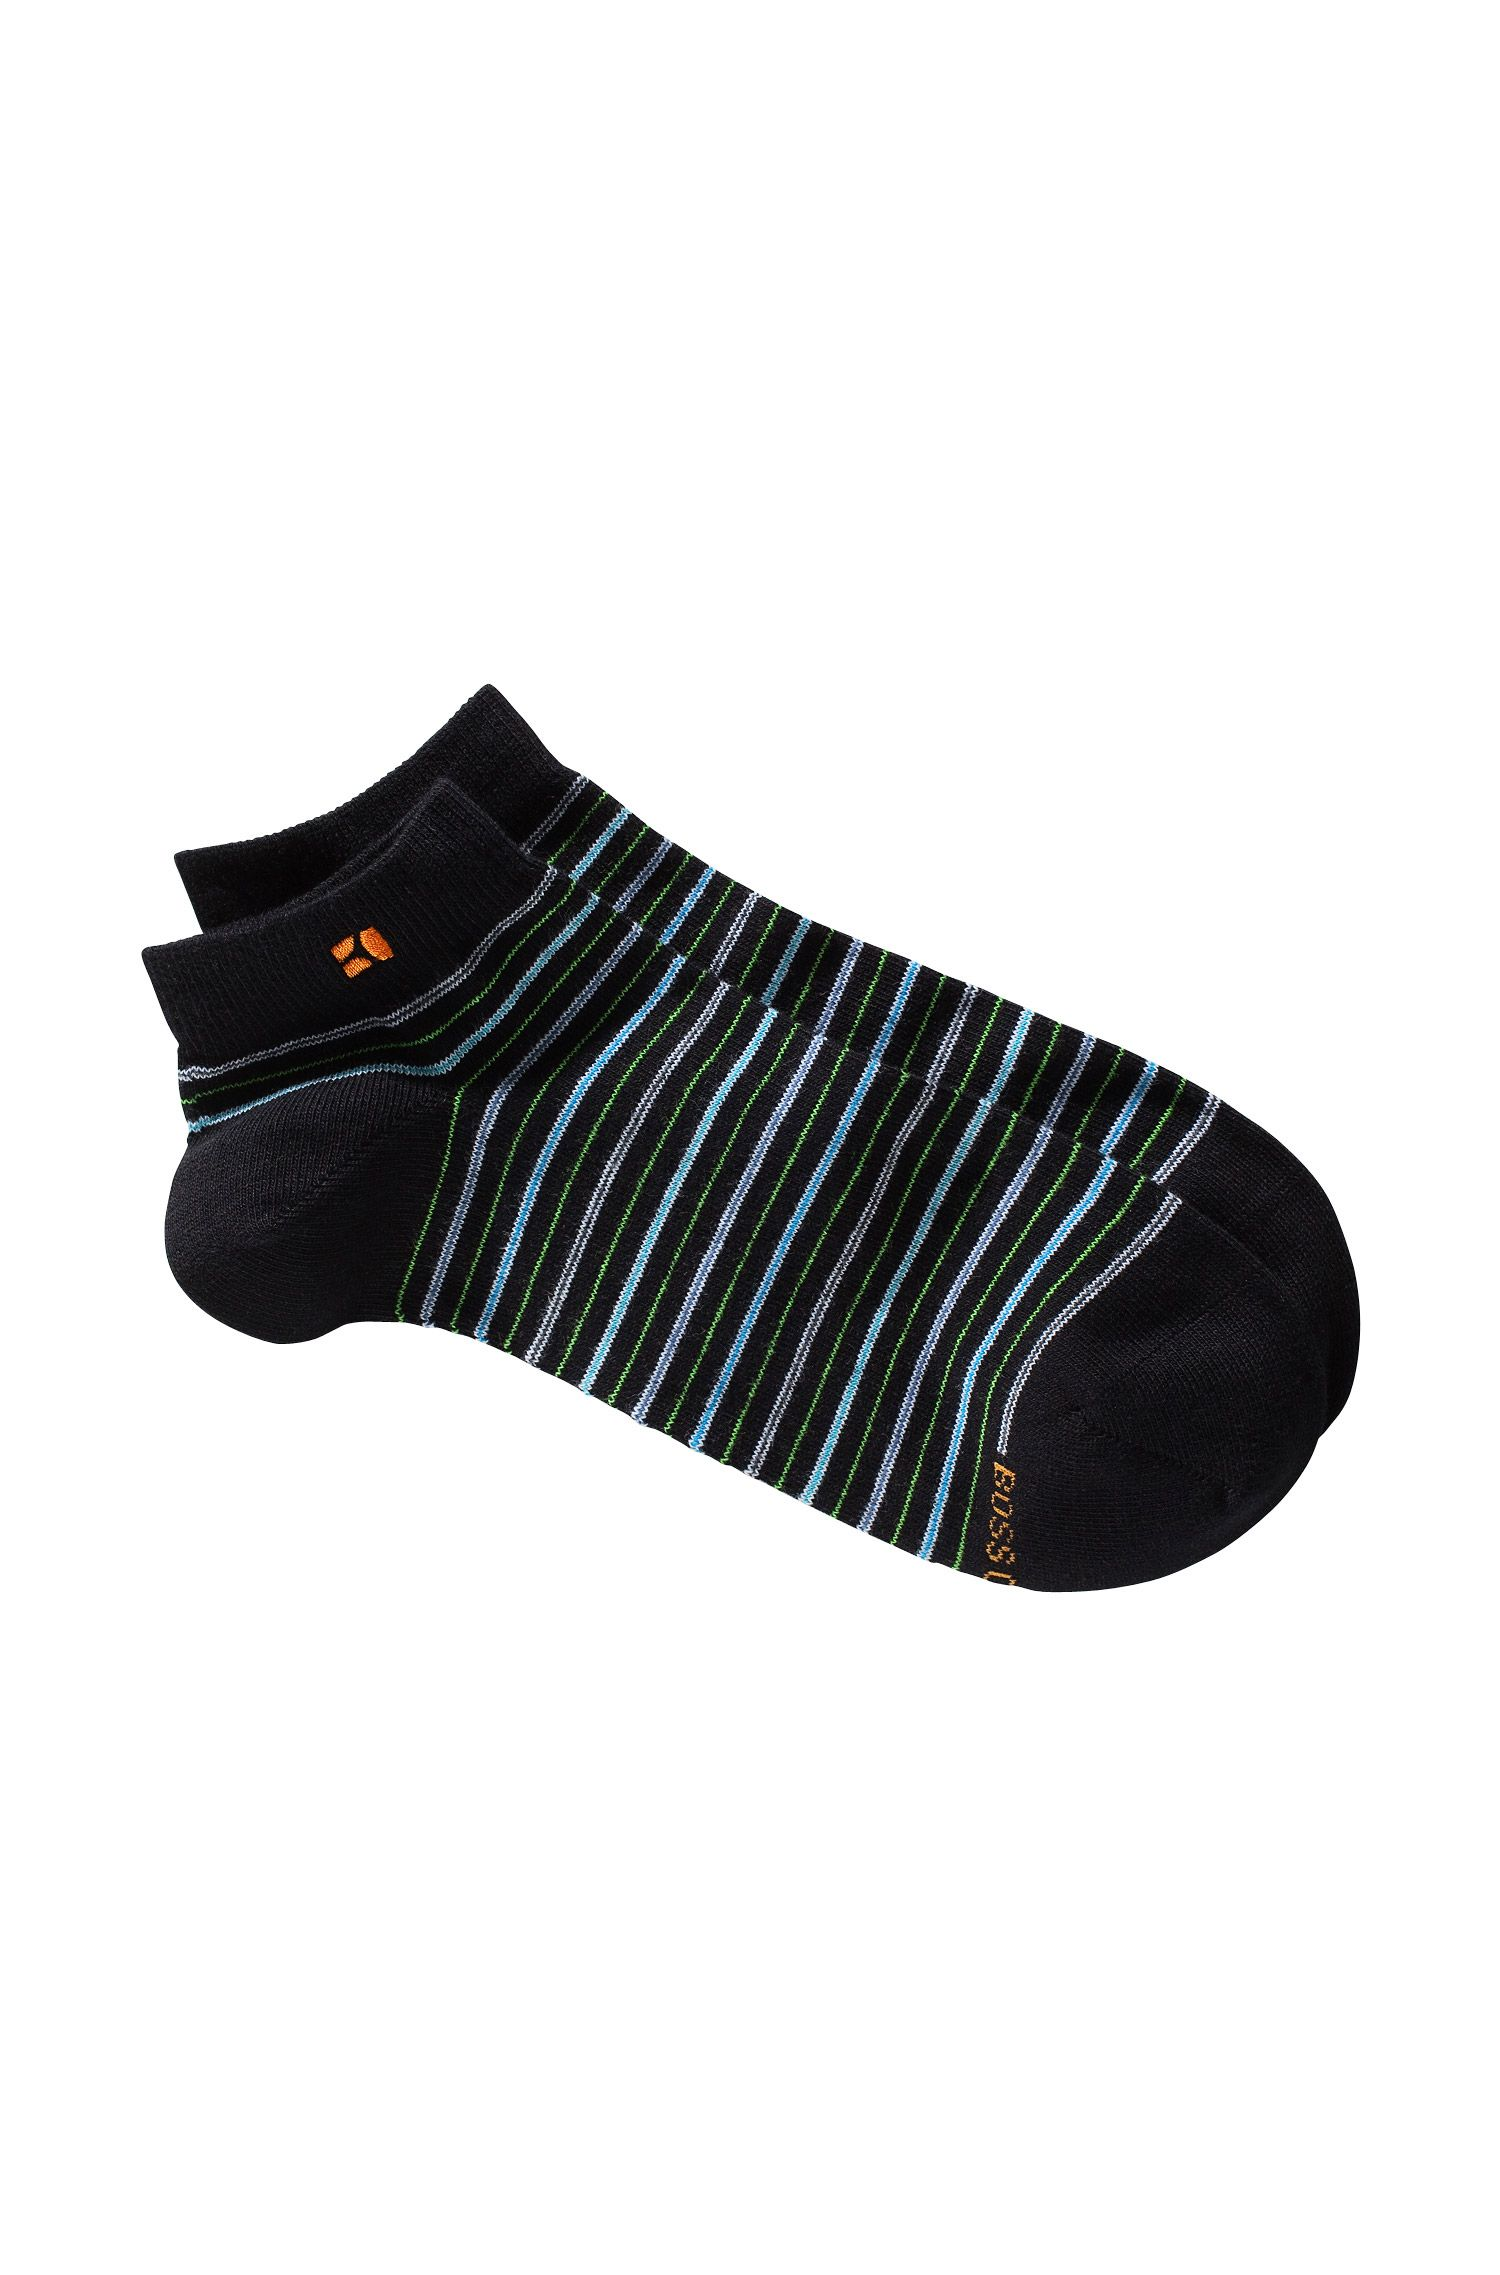 Striped, designer socks 'AS Design'